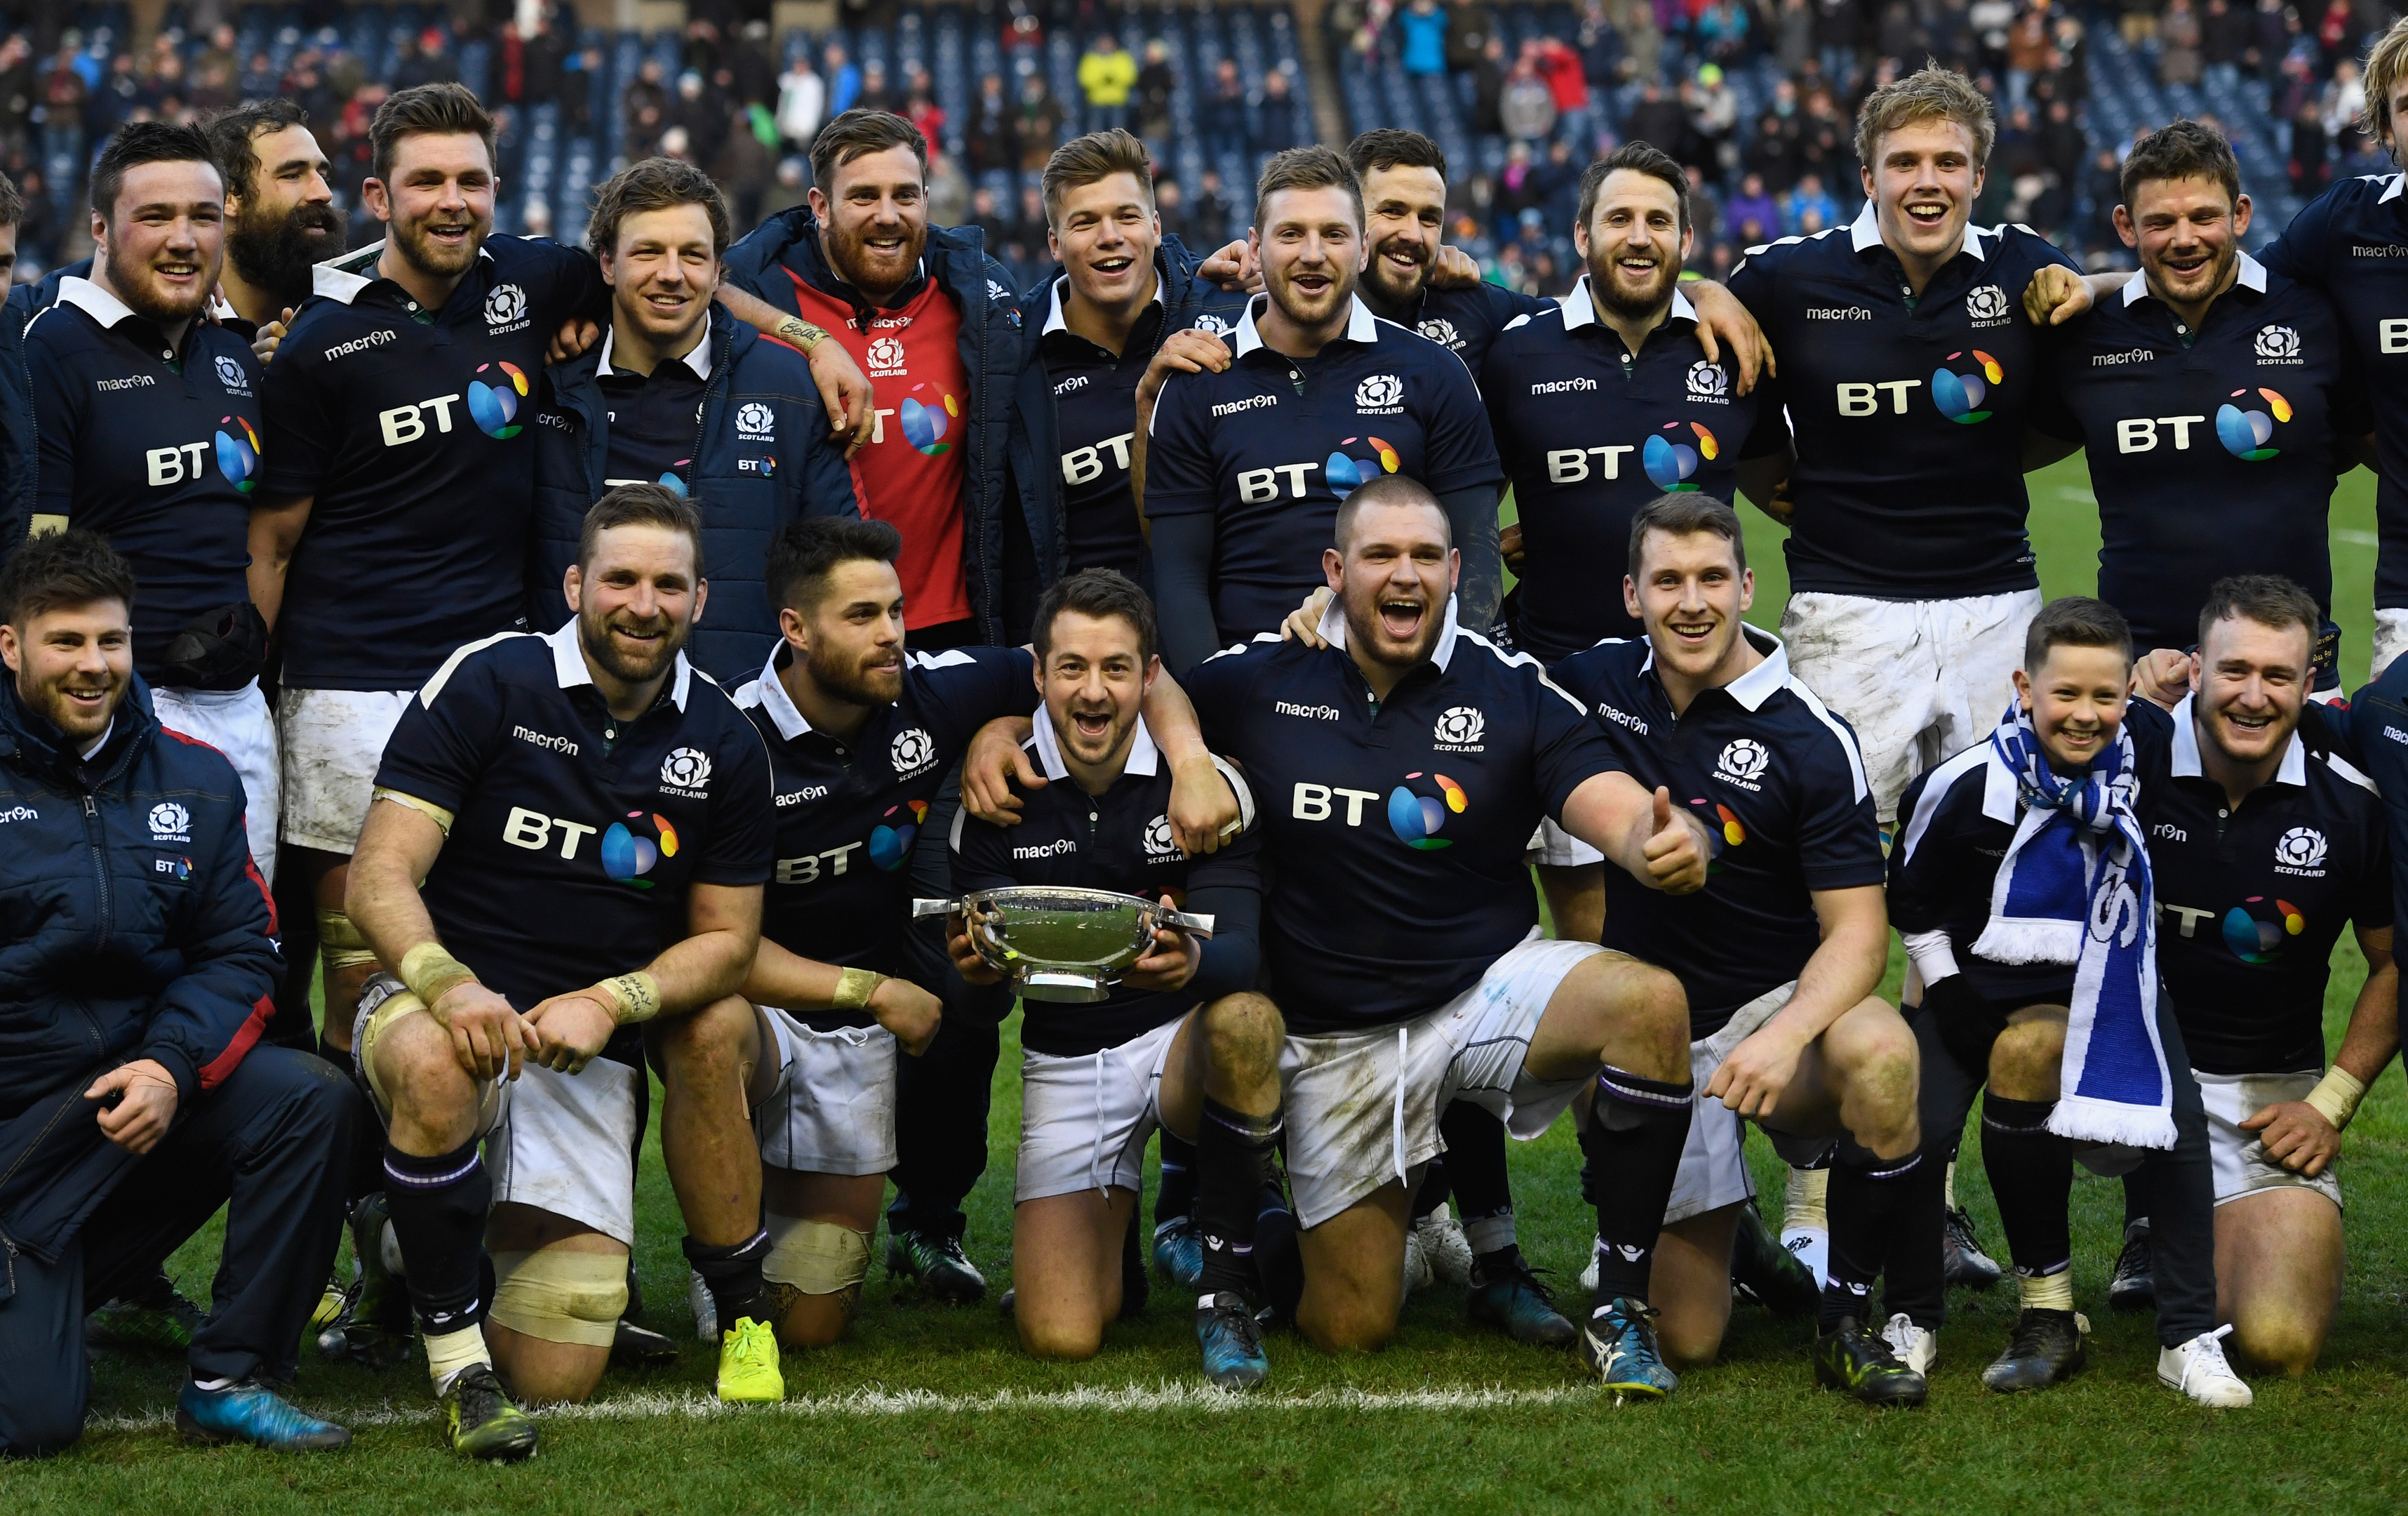 Scotland captain Greig Laidlaw holds the Centenary Quaich with his Scotland team after the RBS Six Nations match between Scotland and Ireland.